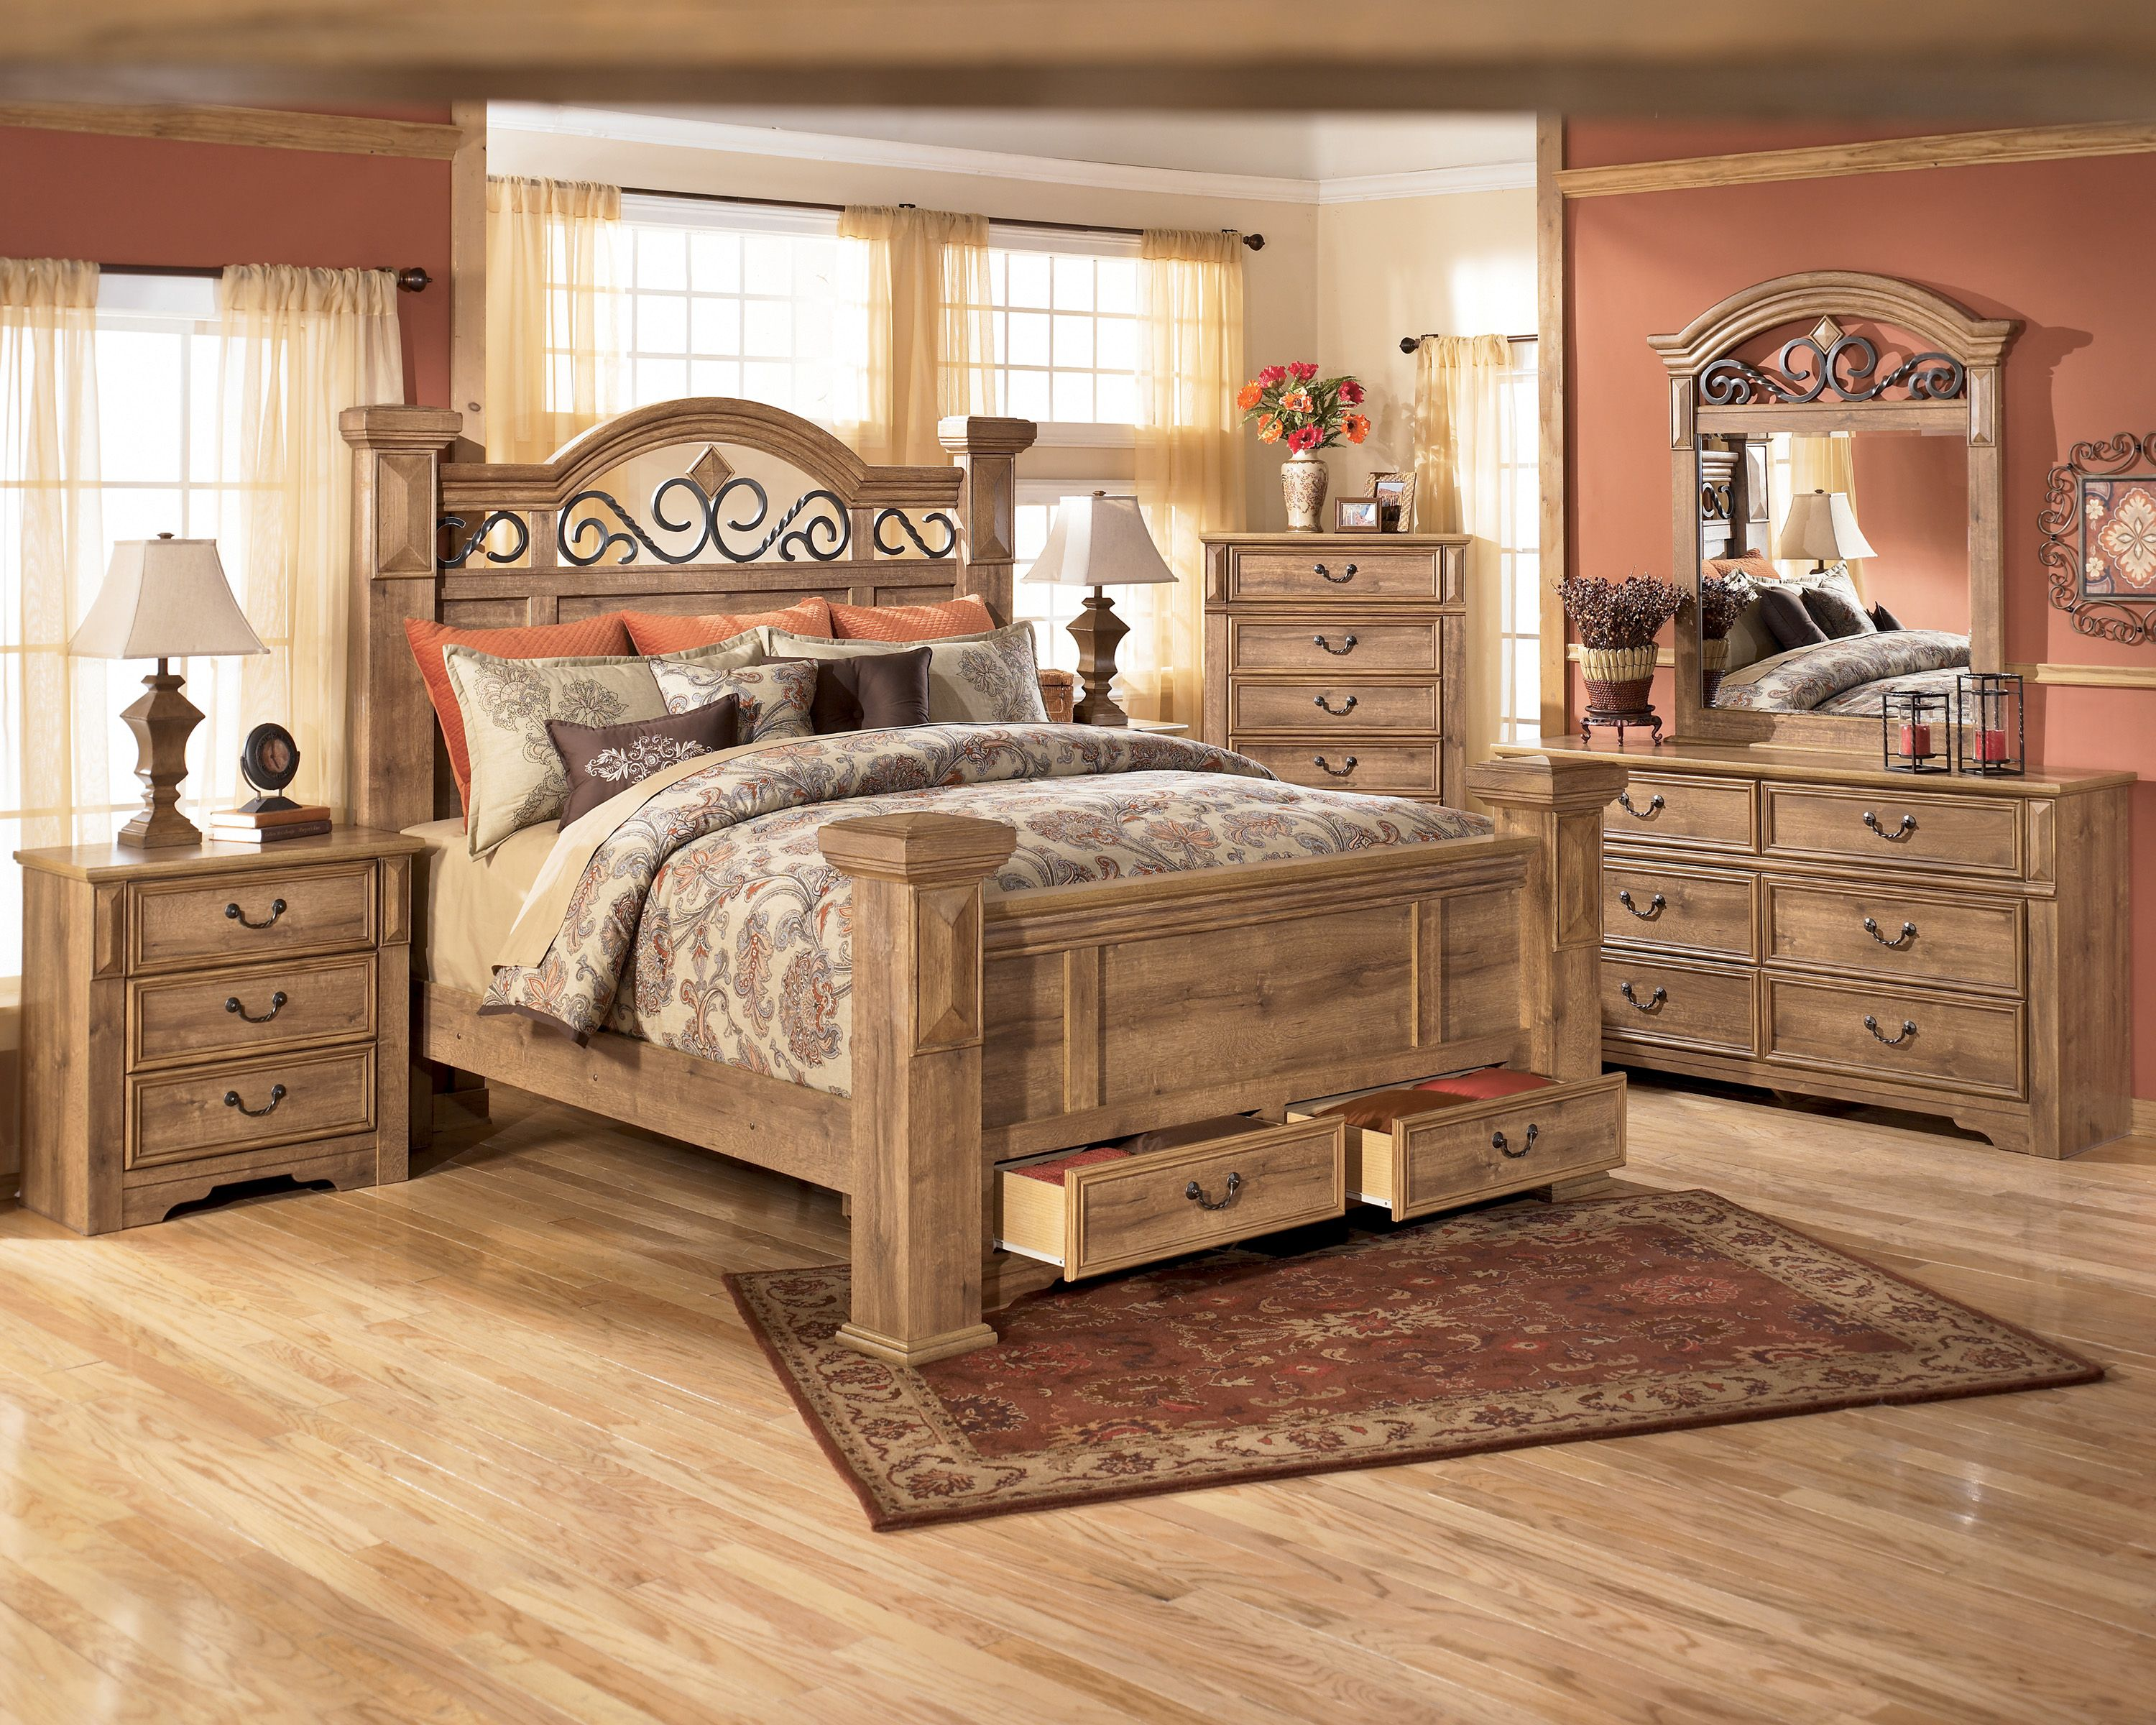 signature design by ashley whimbrel forge poster bed bedroom set home furniture showroom - Complete Bedroom Decor